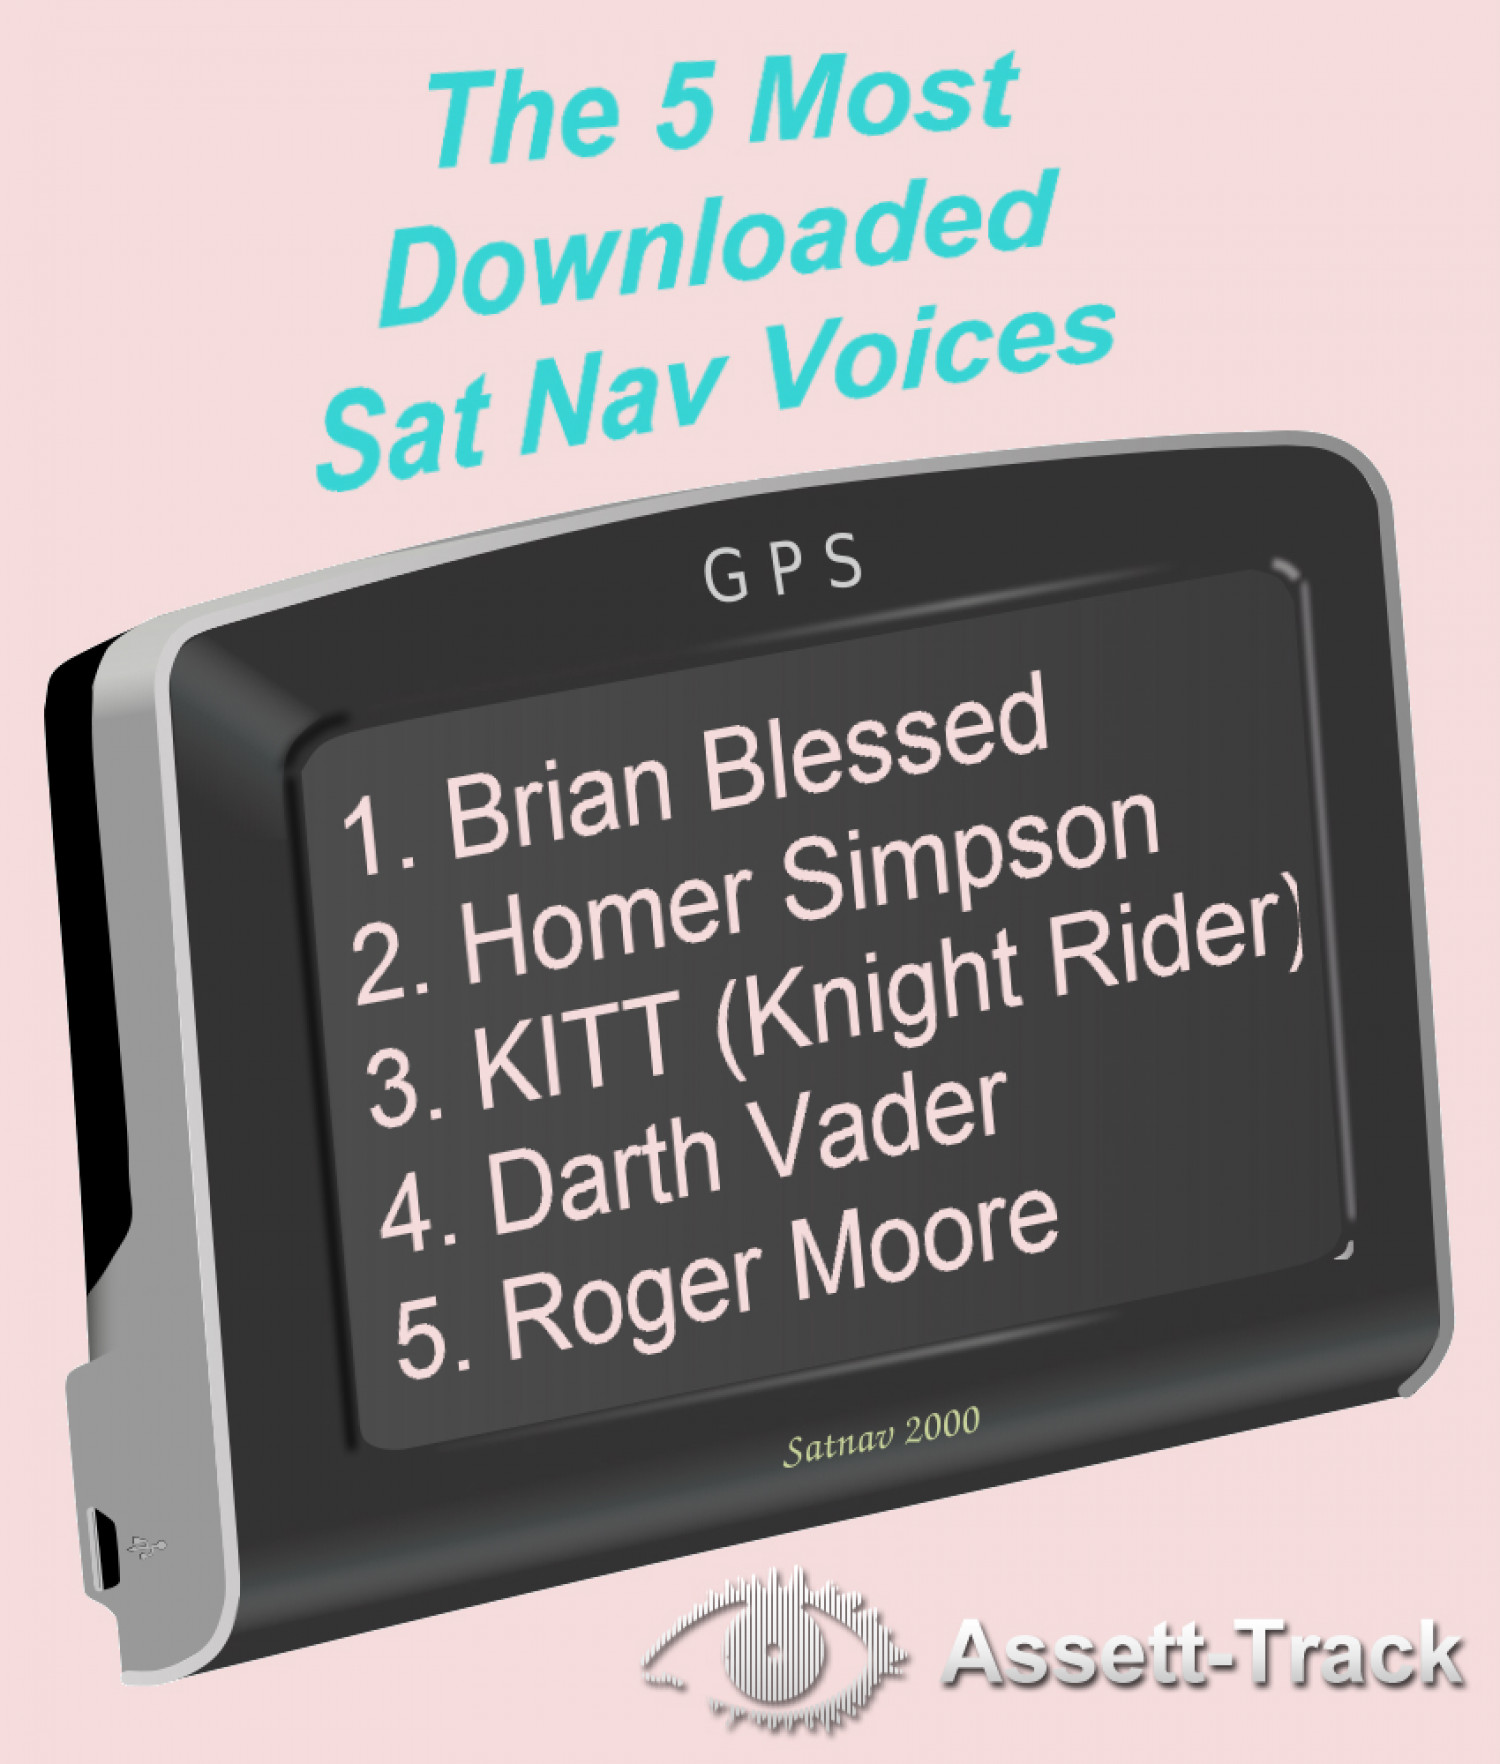 The 5 Most Downloaded Sat Nav Voices Infographic